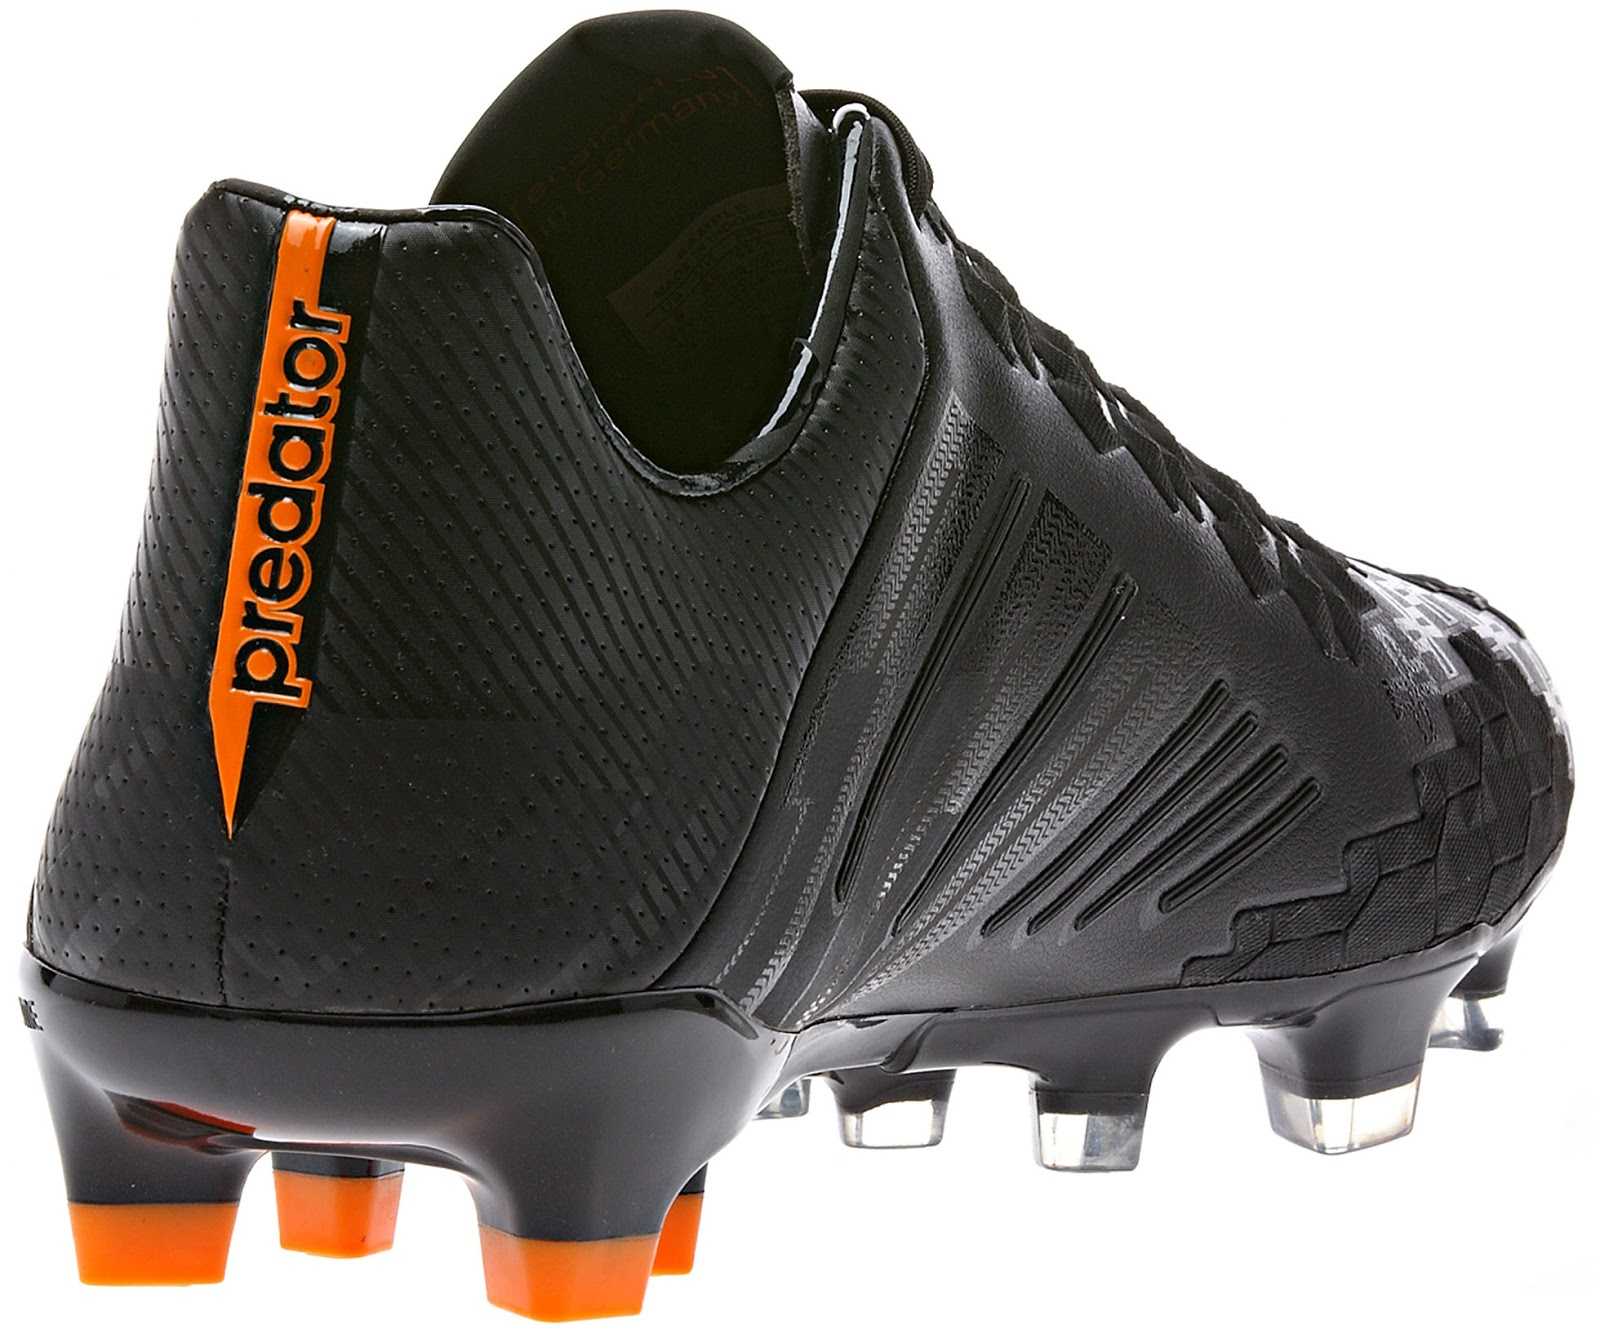 finest selection 72cc6 fea9f Adidas Predator LZ II Blackout